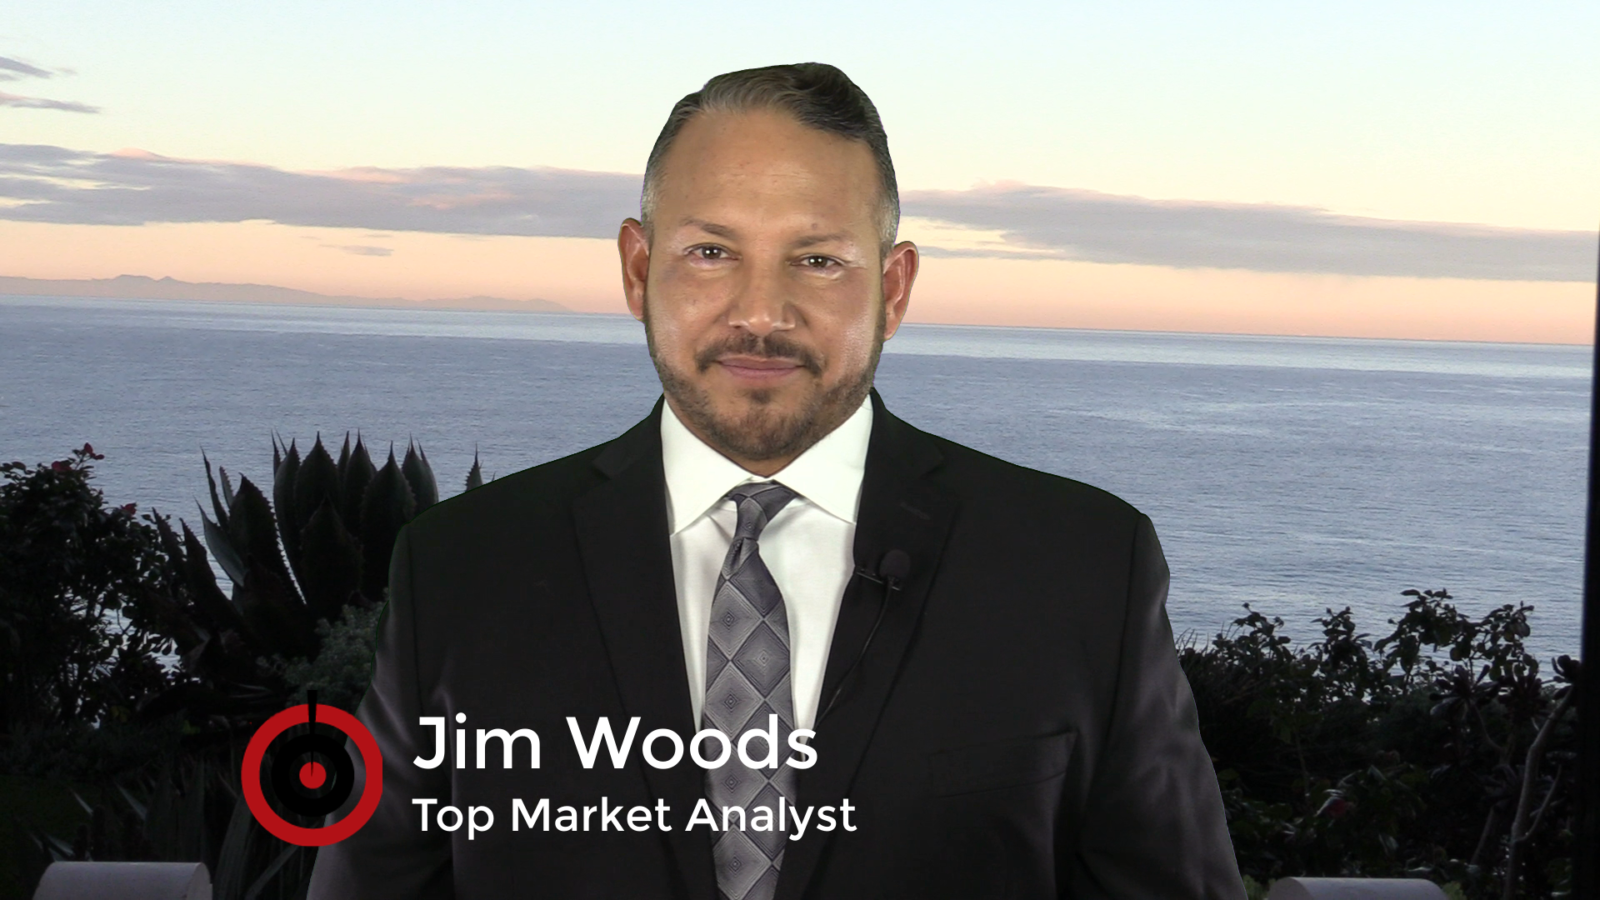 Jim Woods Investing is the number one stock market analyst in the world